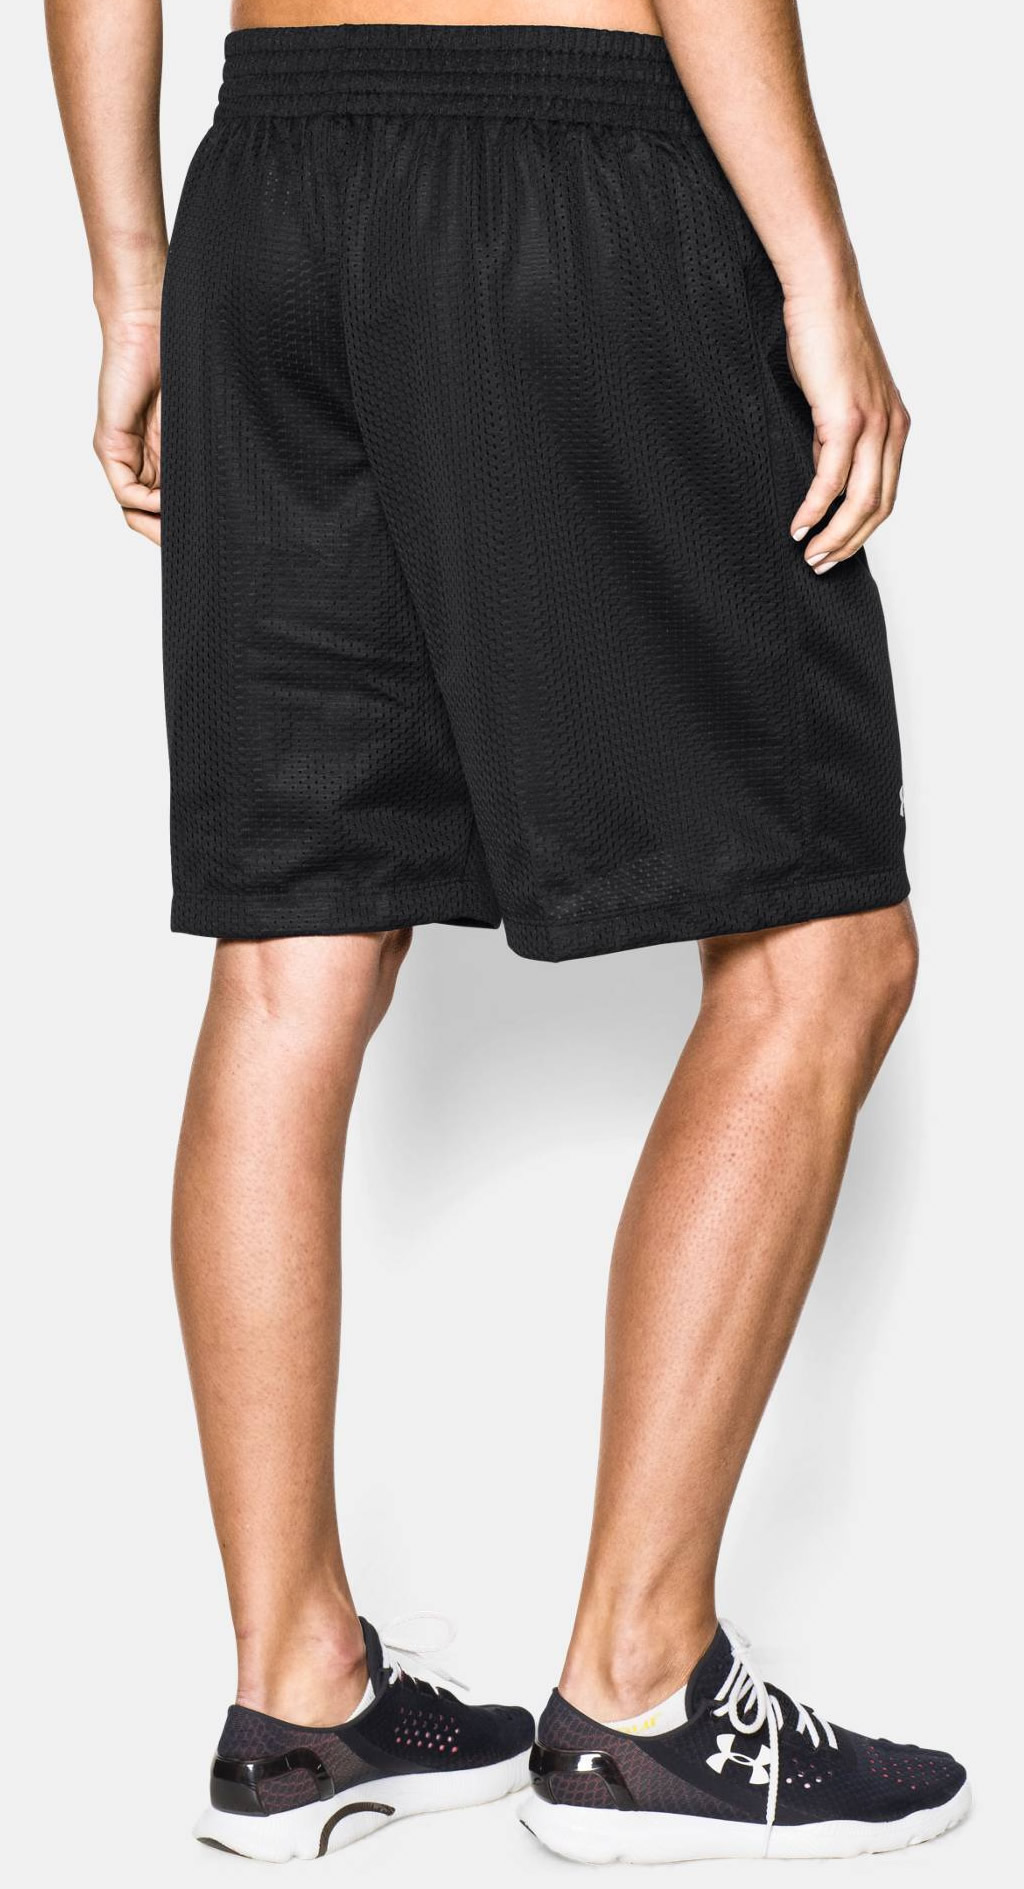 Double Double Women's Shorts by Under Armour